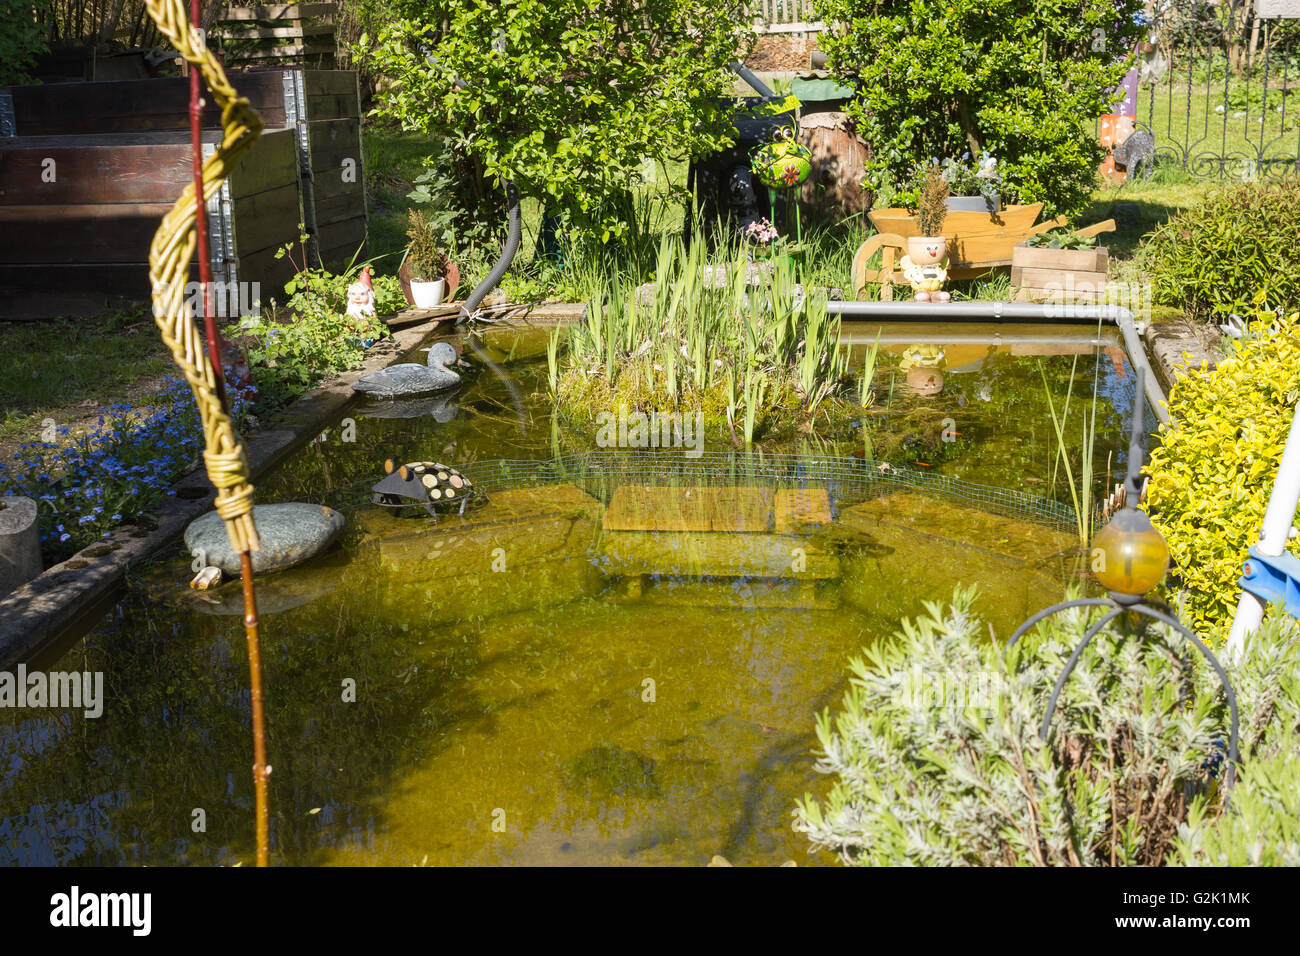 Gartenteich  Gartenteich, Garden pond Stock Photo, Royalty Free Image ...